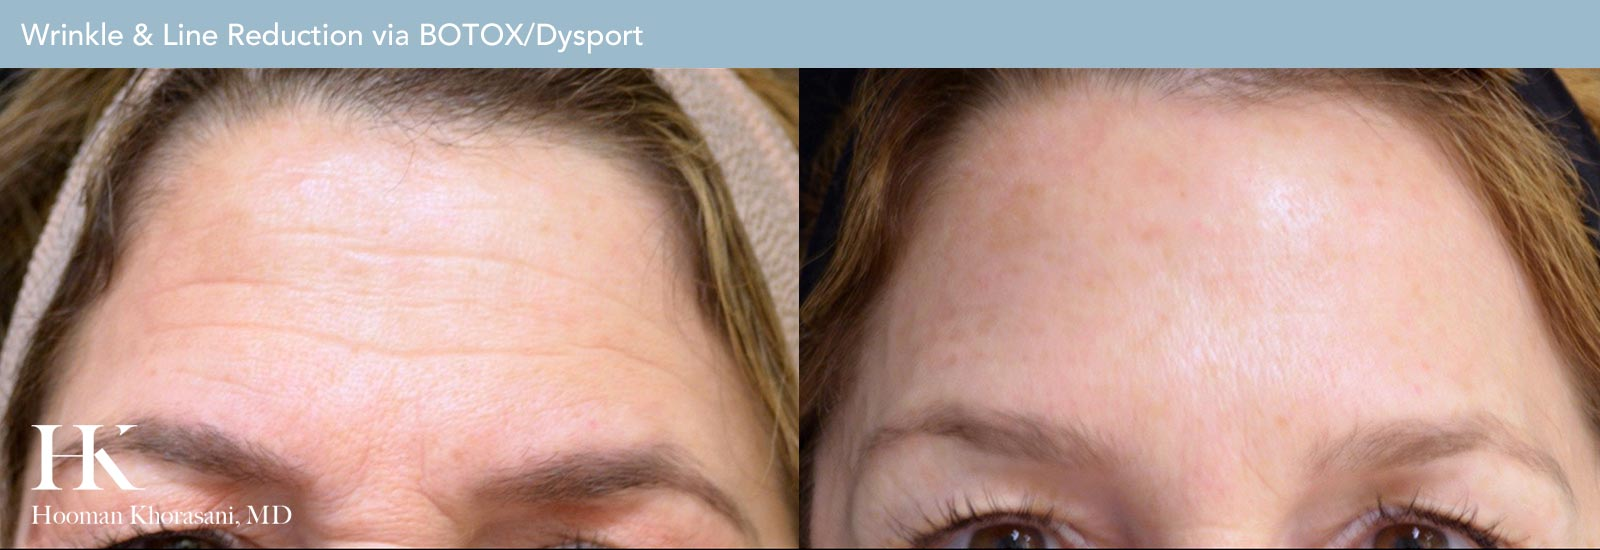 Wrinkle and Line Reduction Before and After Case